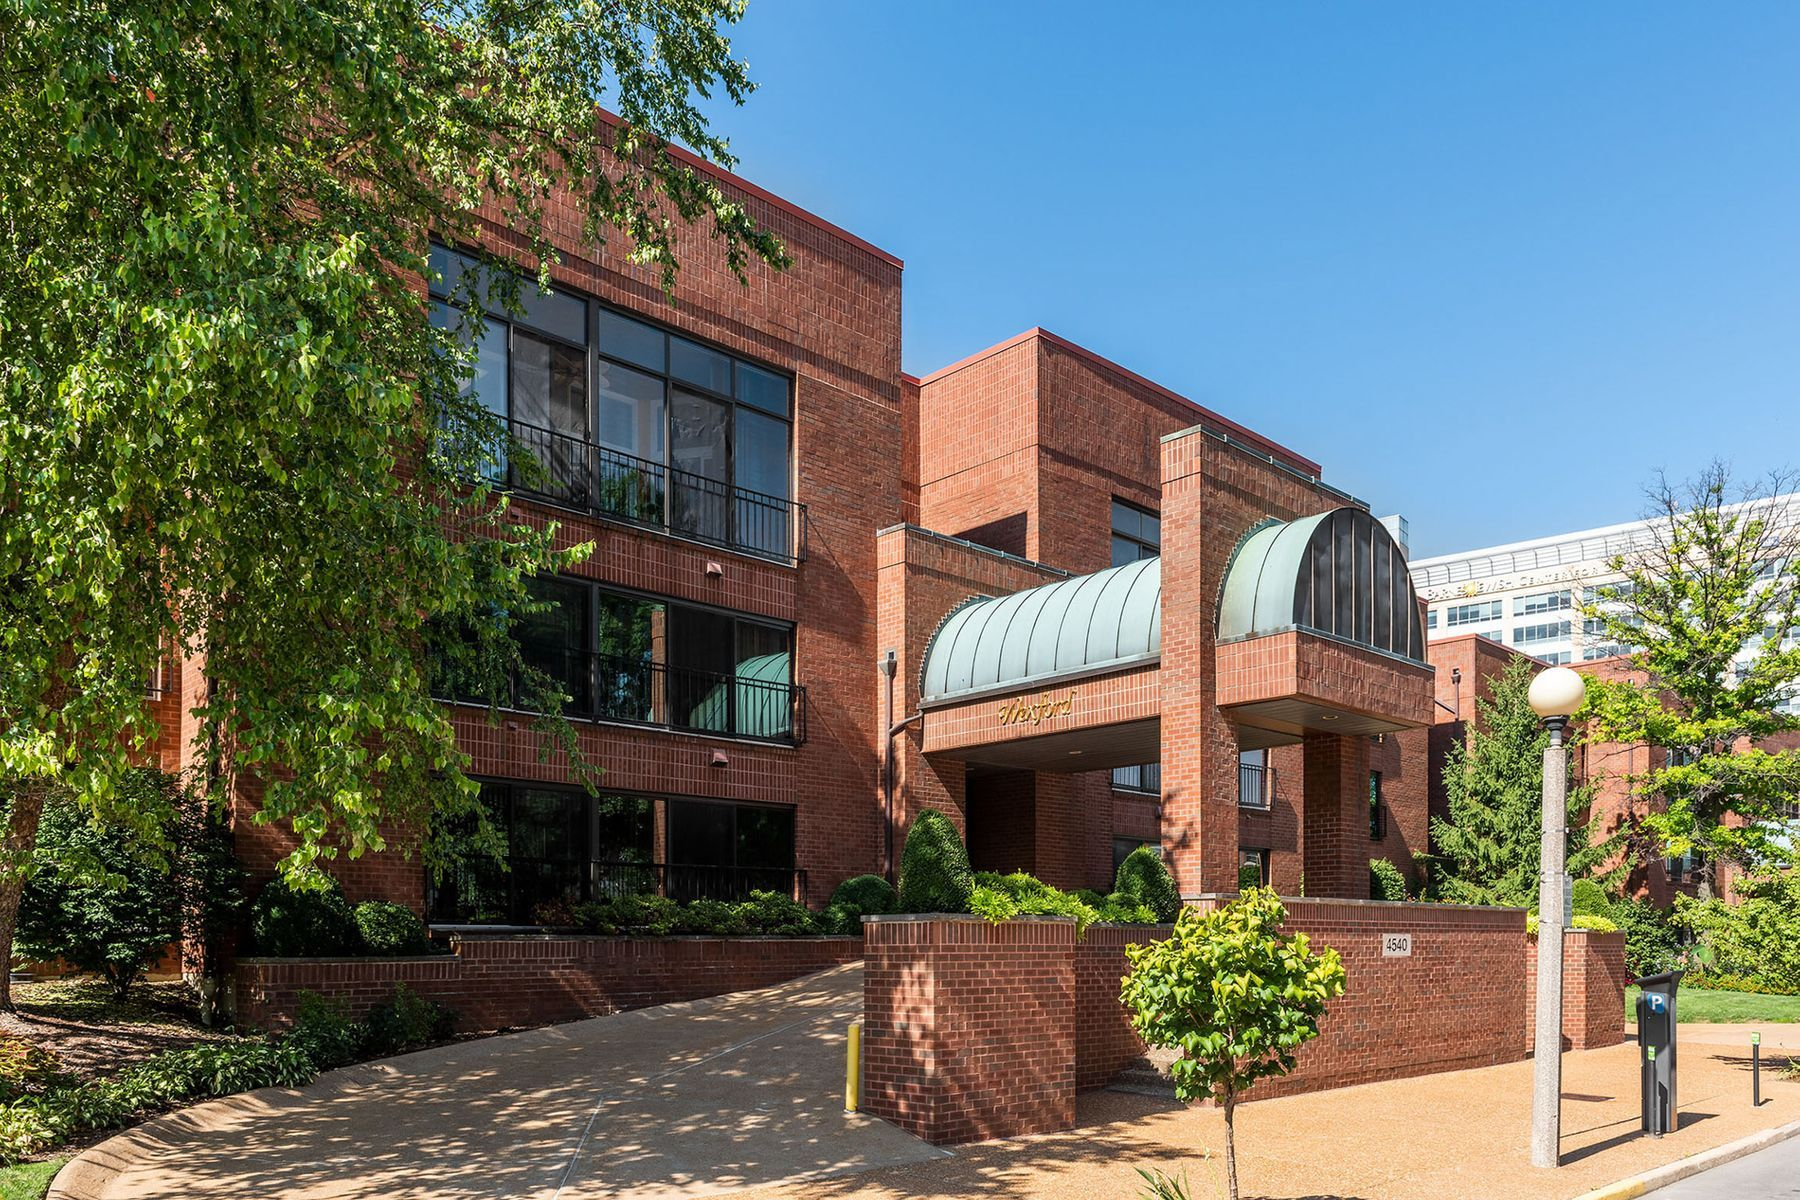 Condominiums for Sale at Wexford Condo 4540 Laclede Avenue 107 St. Louis, Missouri 63108 United States